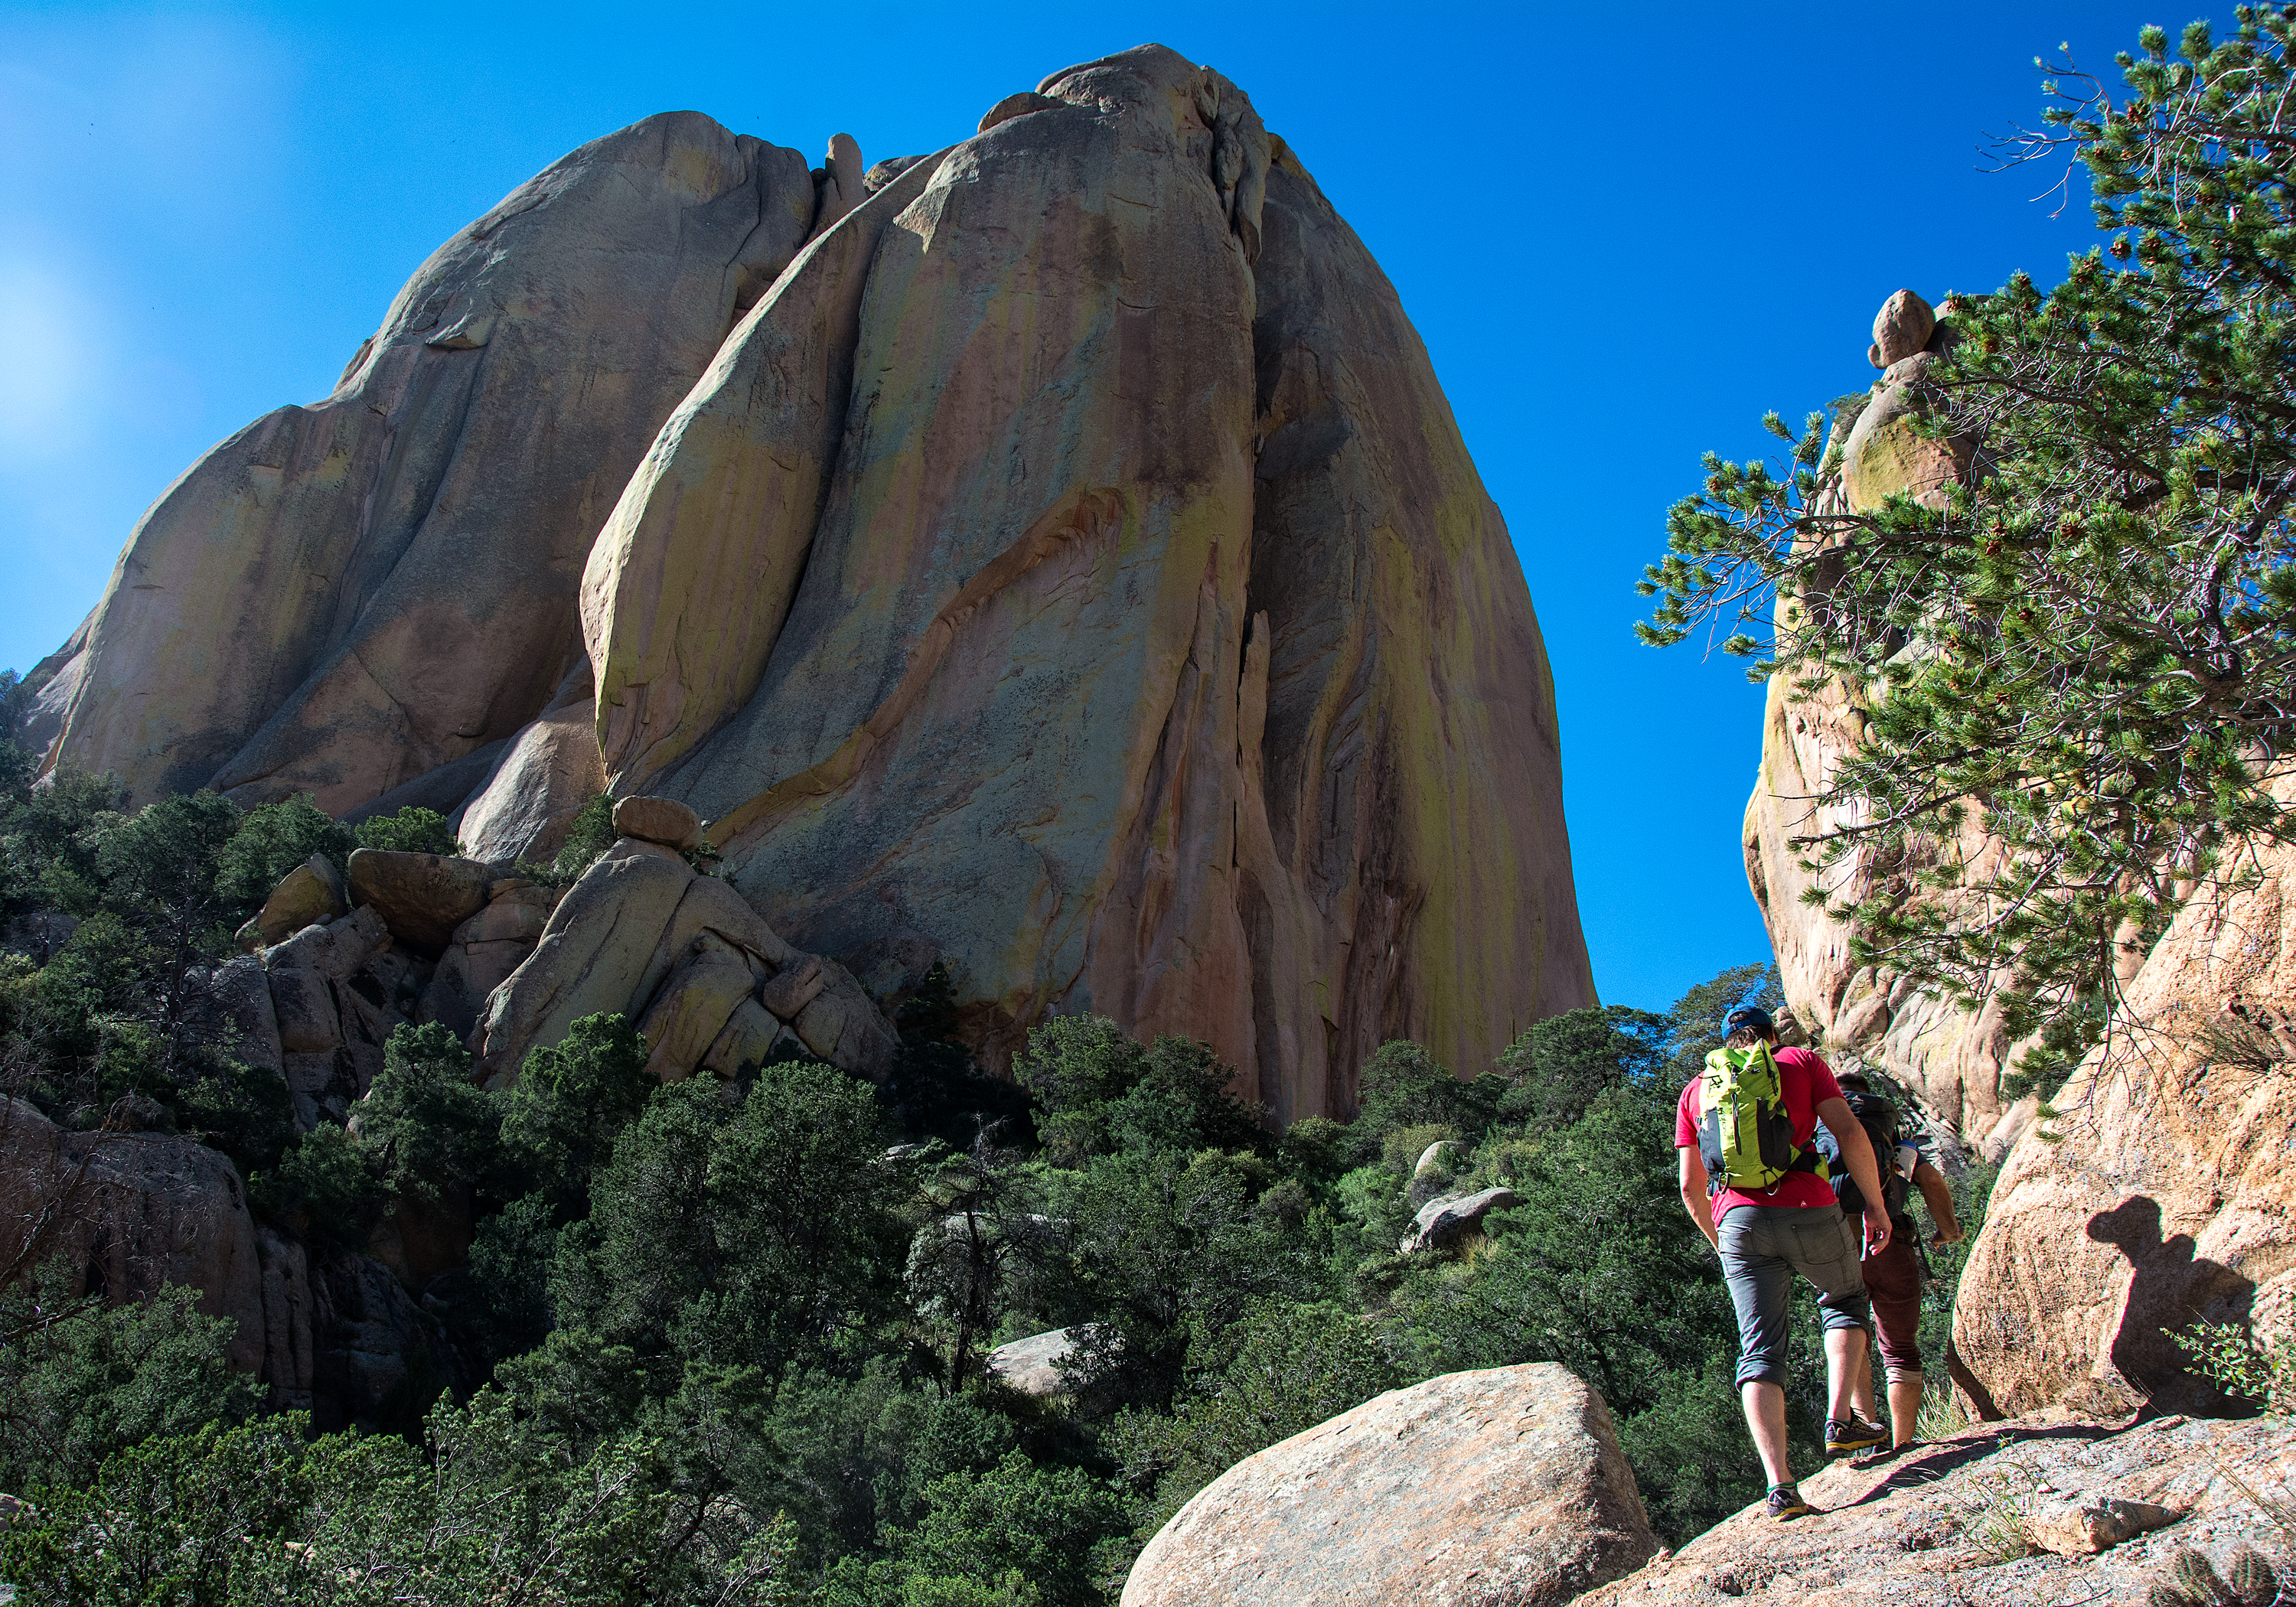 Austin Sobotka leads Jesse Johnston on the final stretch of the approach to the Rockfellows on the east side of the Cochise Stronghold outside of Pearce, Ariz. on Sunday, Sept. 4, 2016. The Rockfellow group is widely considered the premiere climbing destination in Cochise and most prominently includes End Pinnacle, Chey Desa Tsay and Rockfellow Dome. (Alex McIntyre / Arizona Sonora News Service)